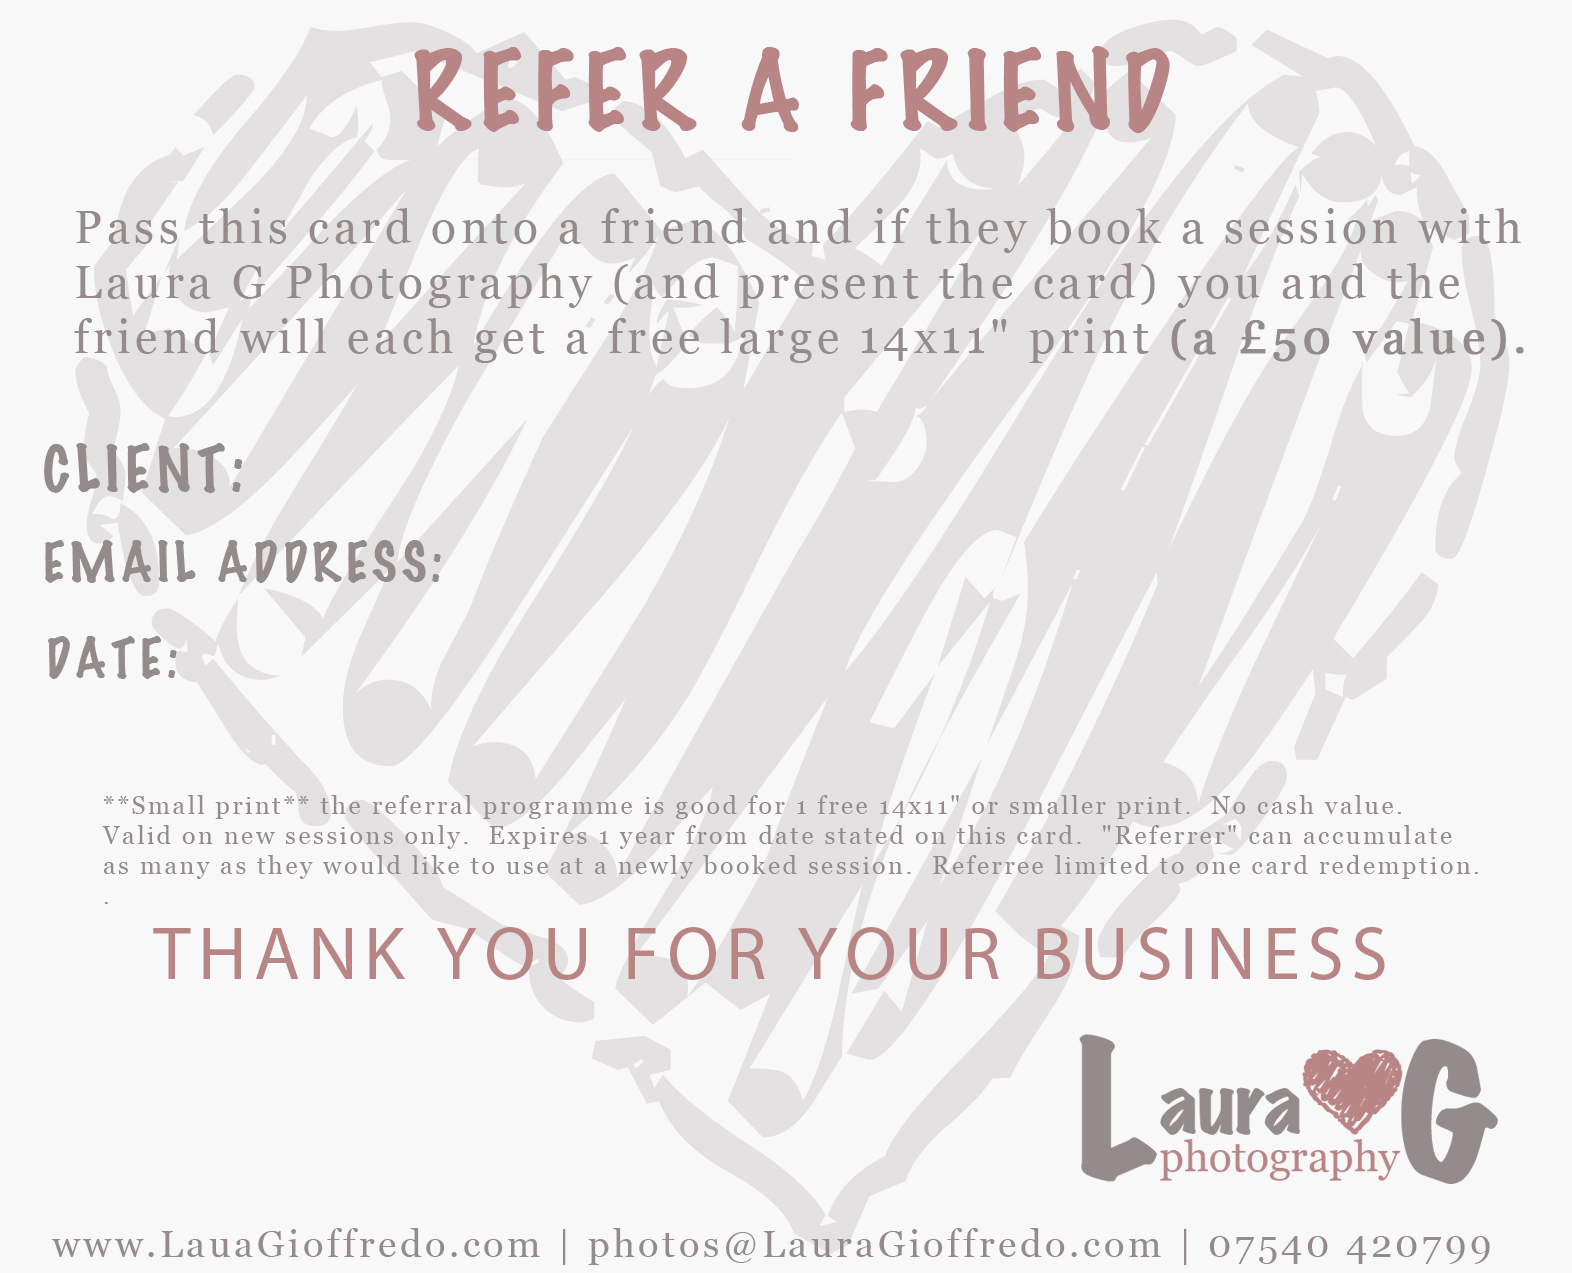 Laura G Photography: Referral Programme